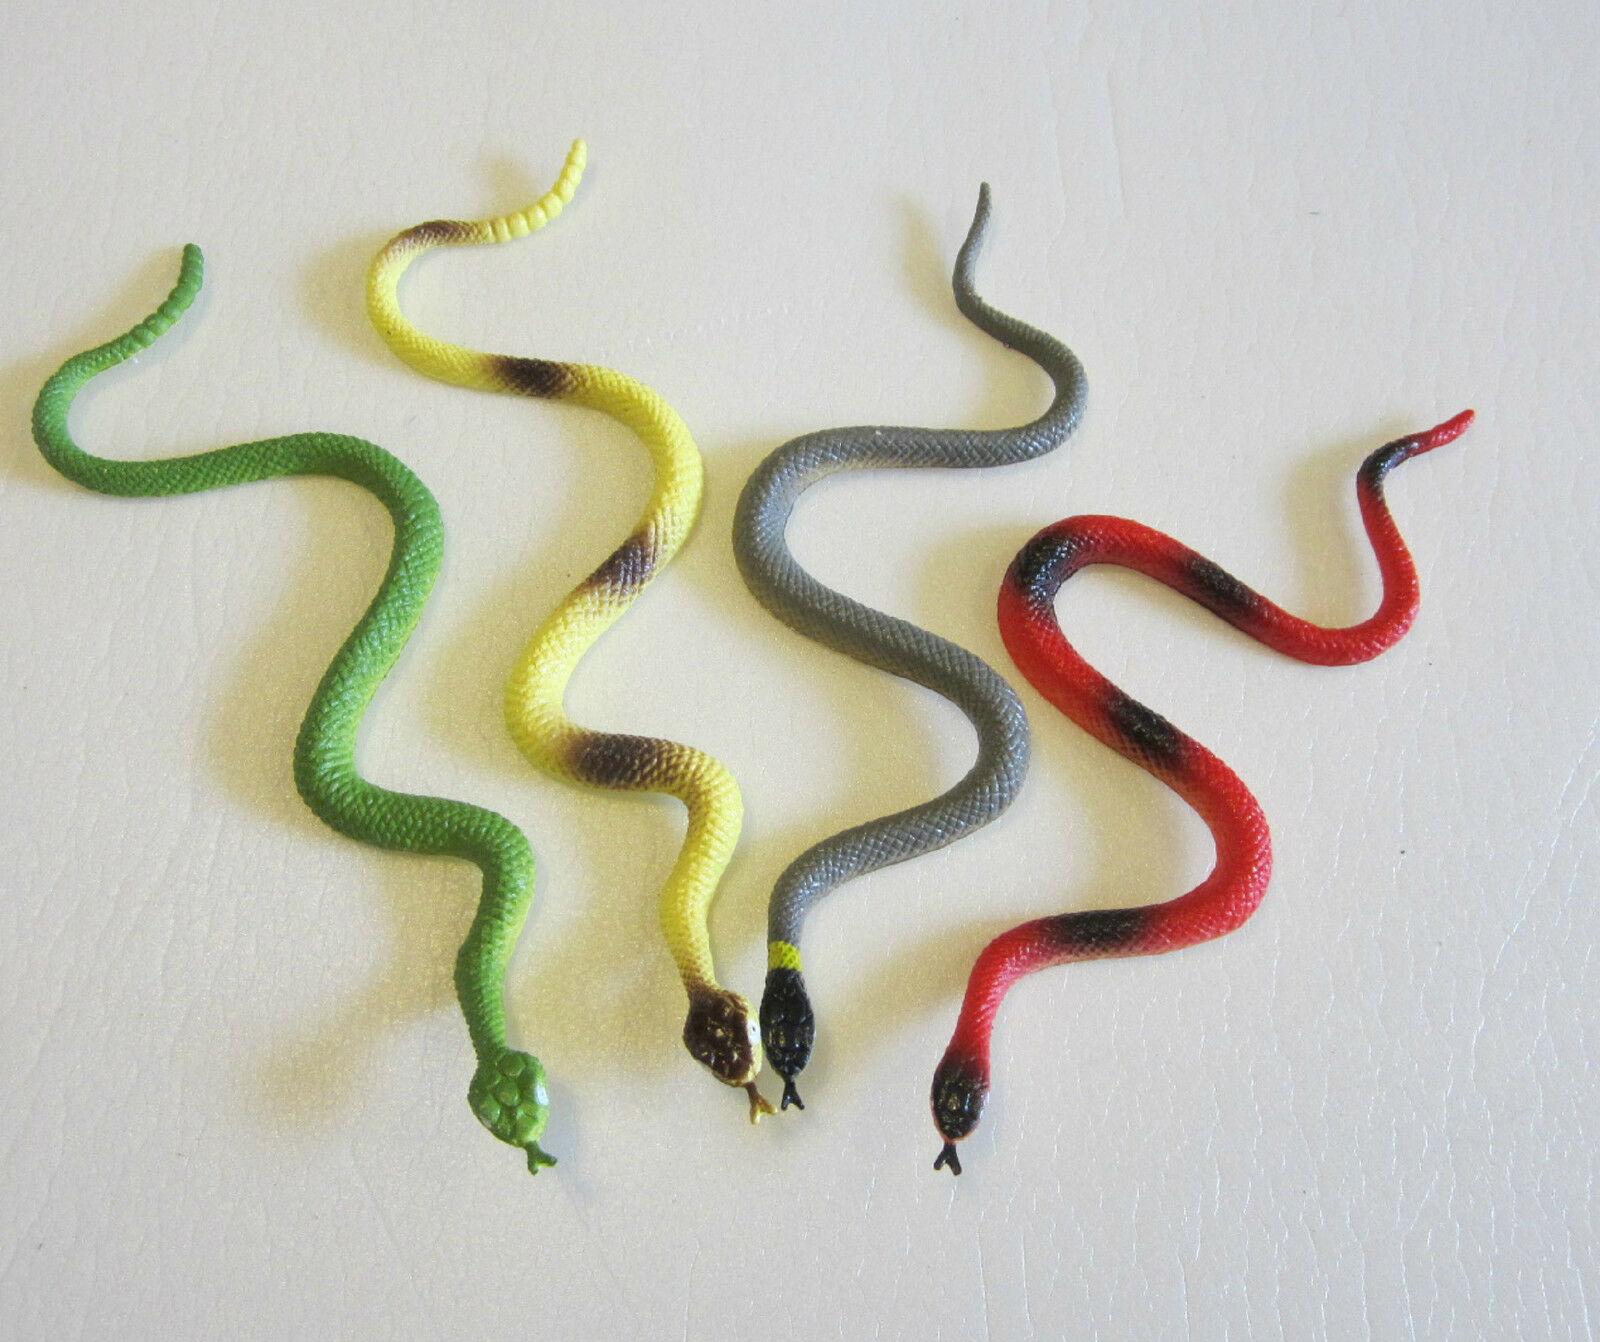 """7 COILED RAIN FOREST RUBBER SNAKES 36/"""" TOY REPTILE FAKE JUNGLE SNAKE GAG GIFT"""